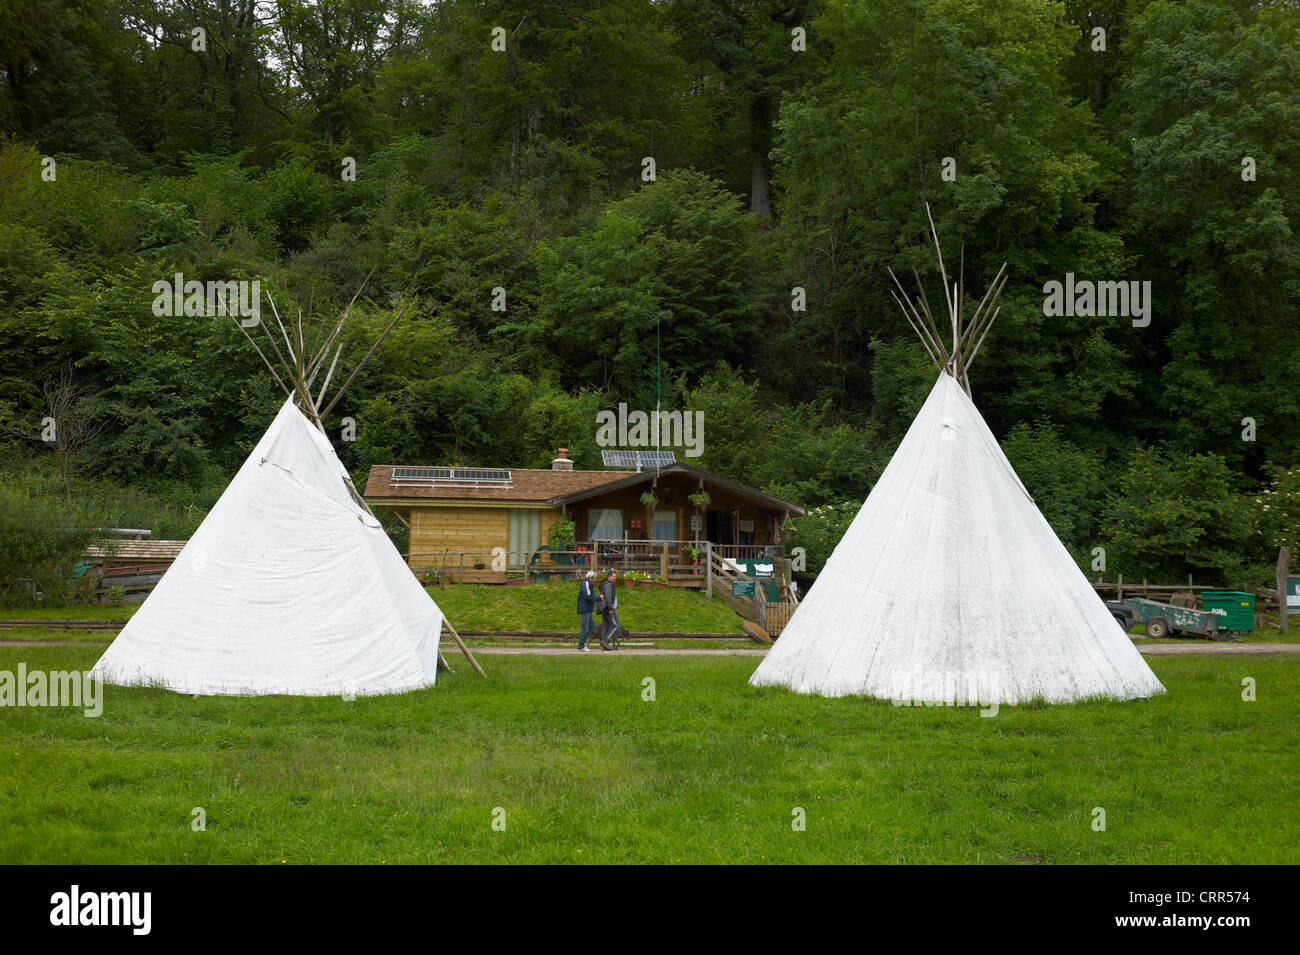 Tipis at The Biblins youth camp near Symondsy Yat in the Wye Valley Herefordshire England - Stock Image